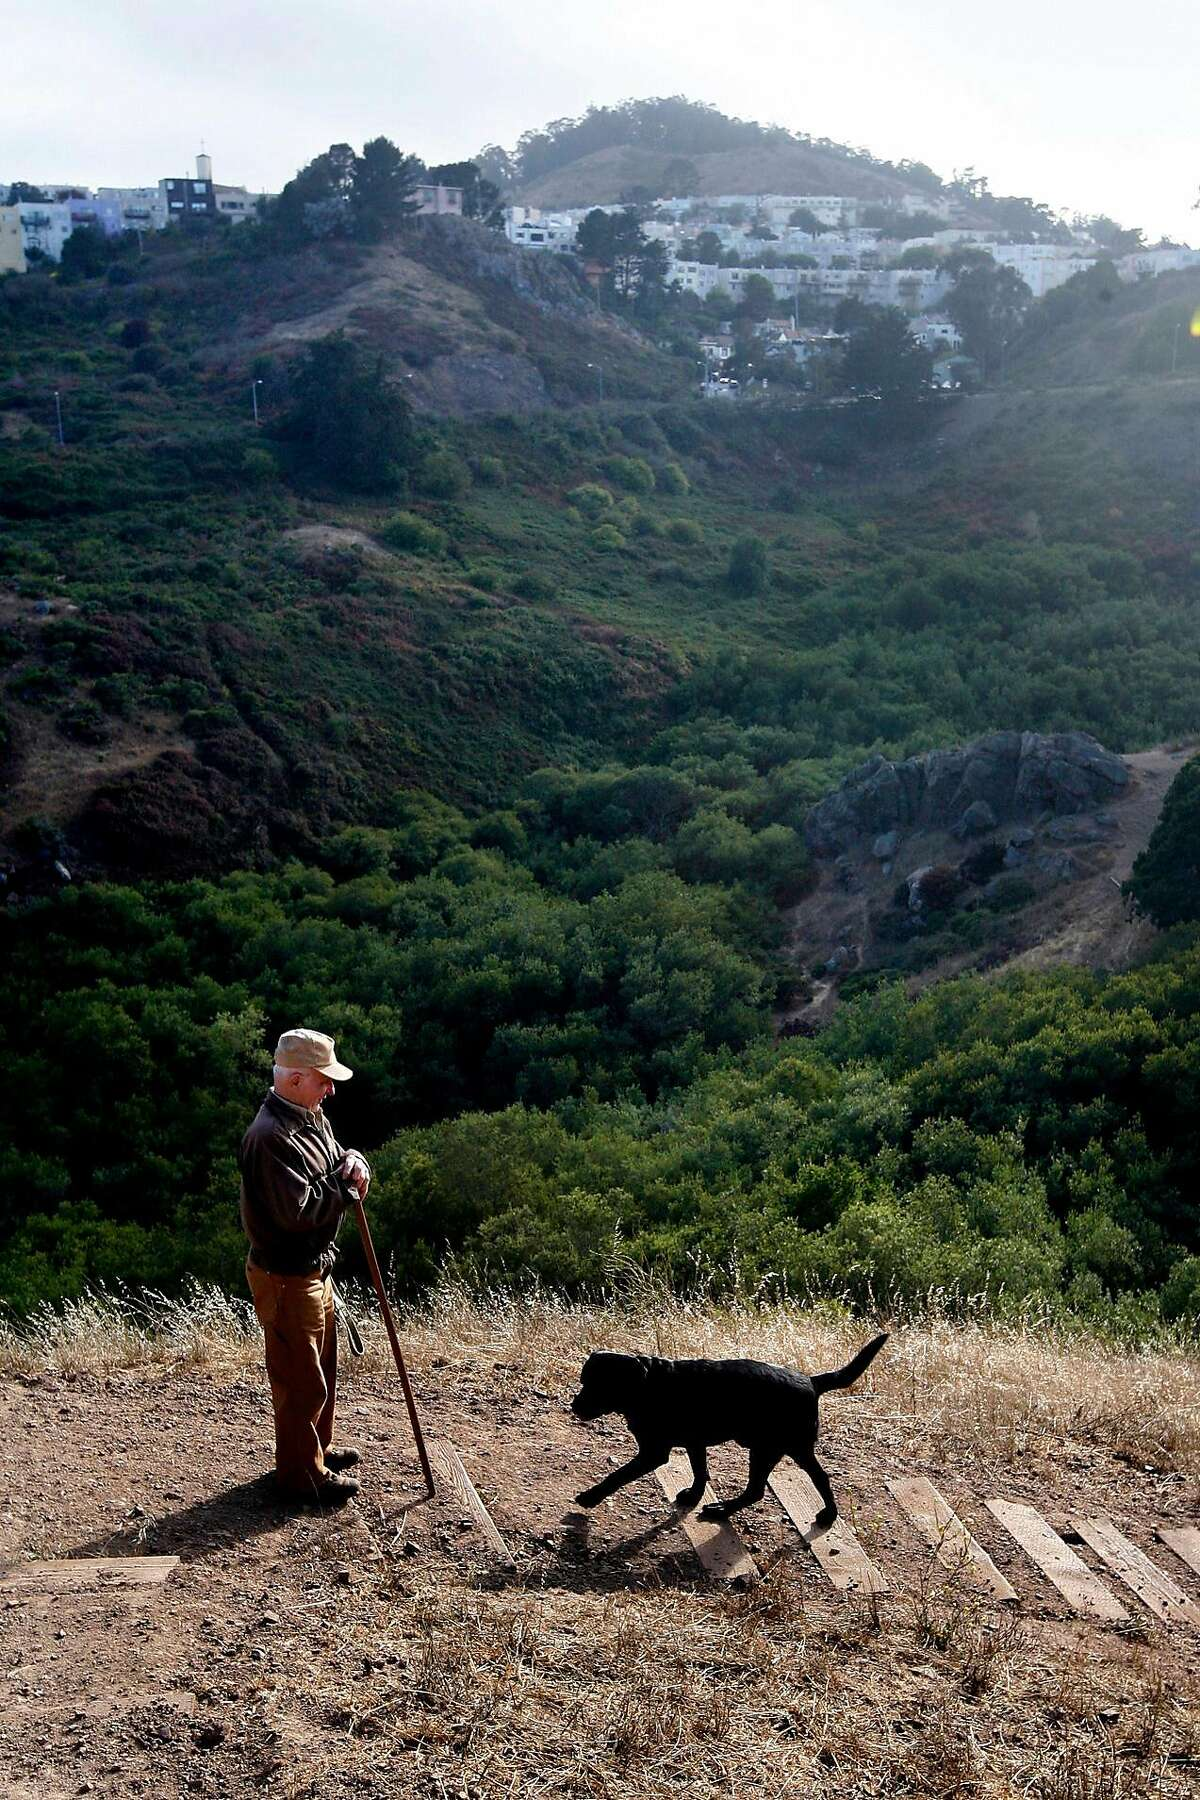 Leo Hainzl, who took daily 6-mile walks with his dogs in Glen Canyon Park, visits the park with his dog Fritz in 2008. Last year, he was slain while walking in the park with his dog Rip.